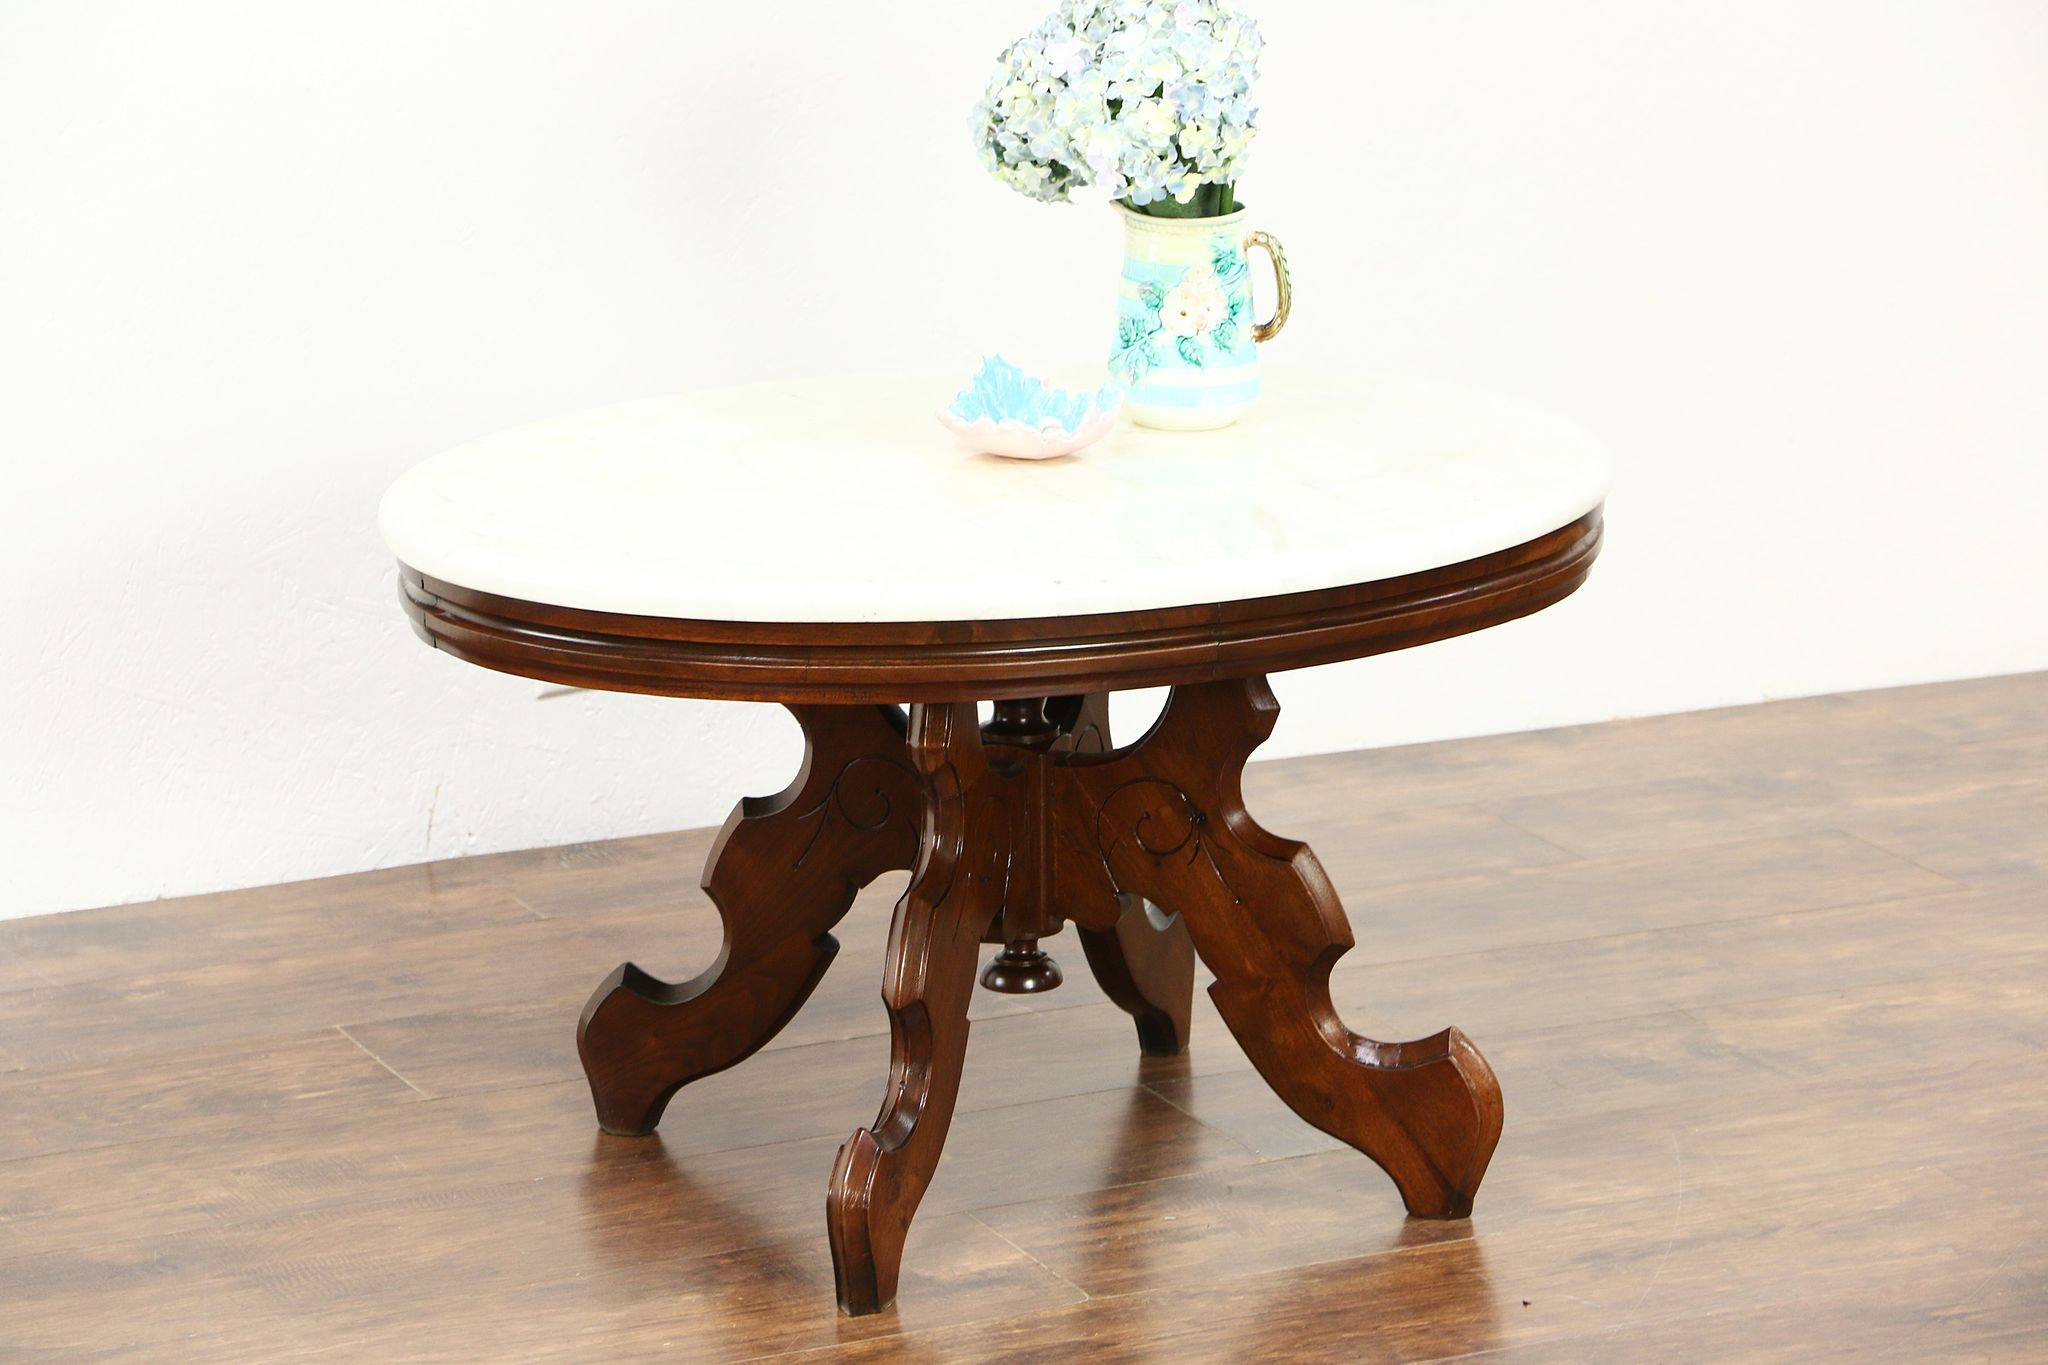 Sold Victorian 1880 S Antique Oval Marble Top Carved Walnut Coffee Table Harp Gallery Antiques Furniture